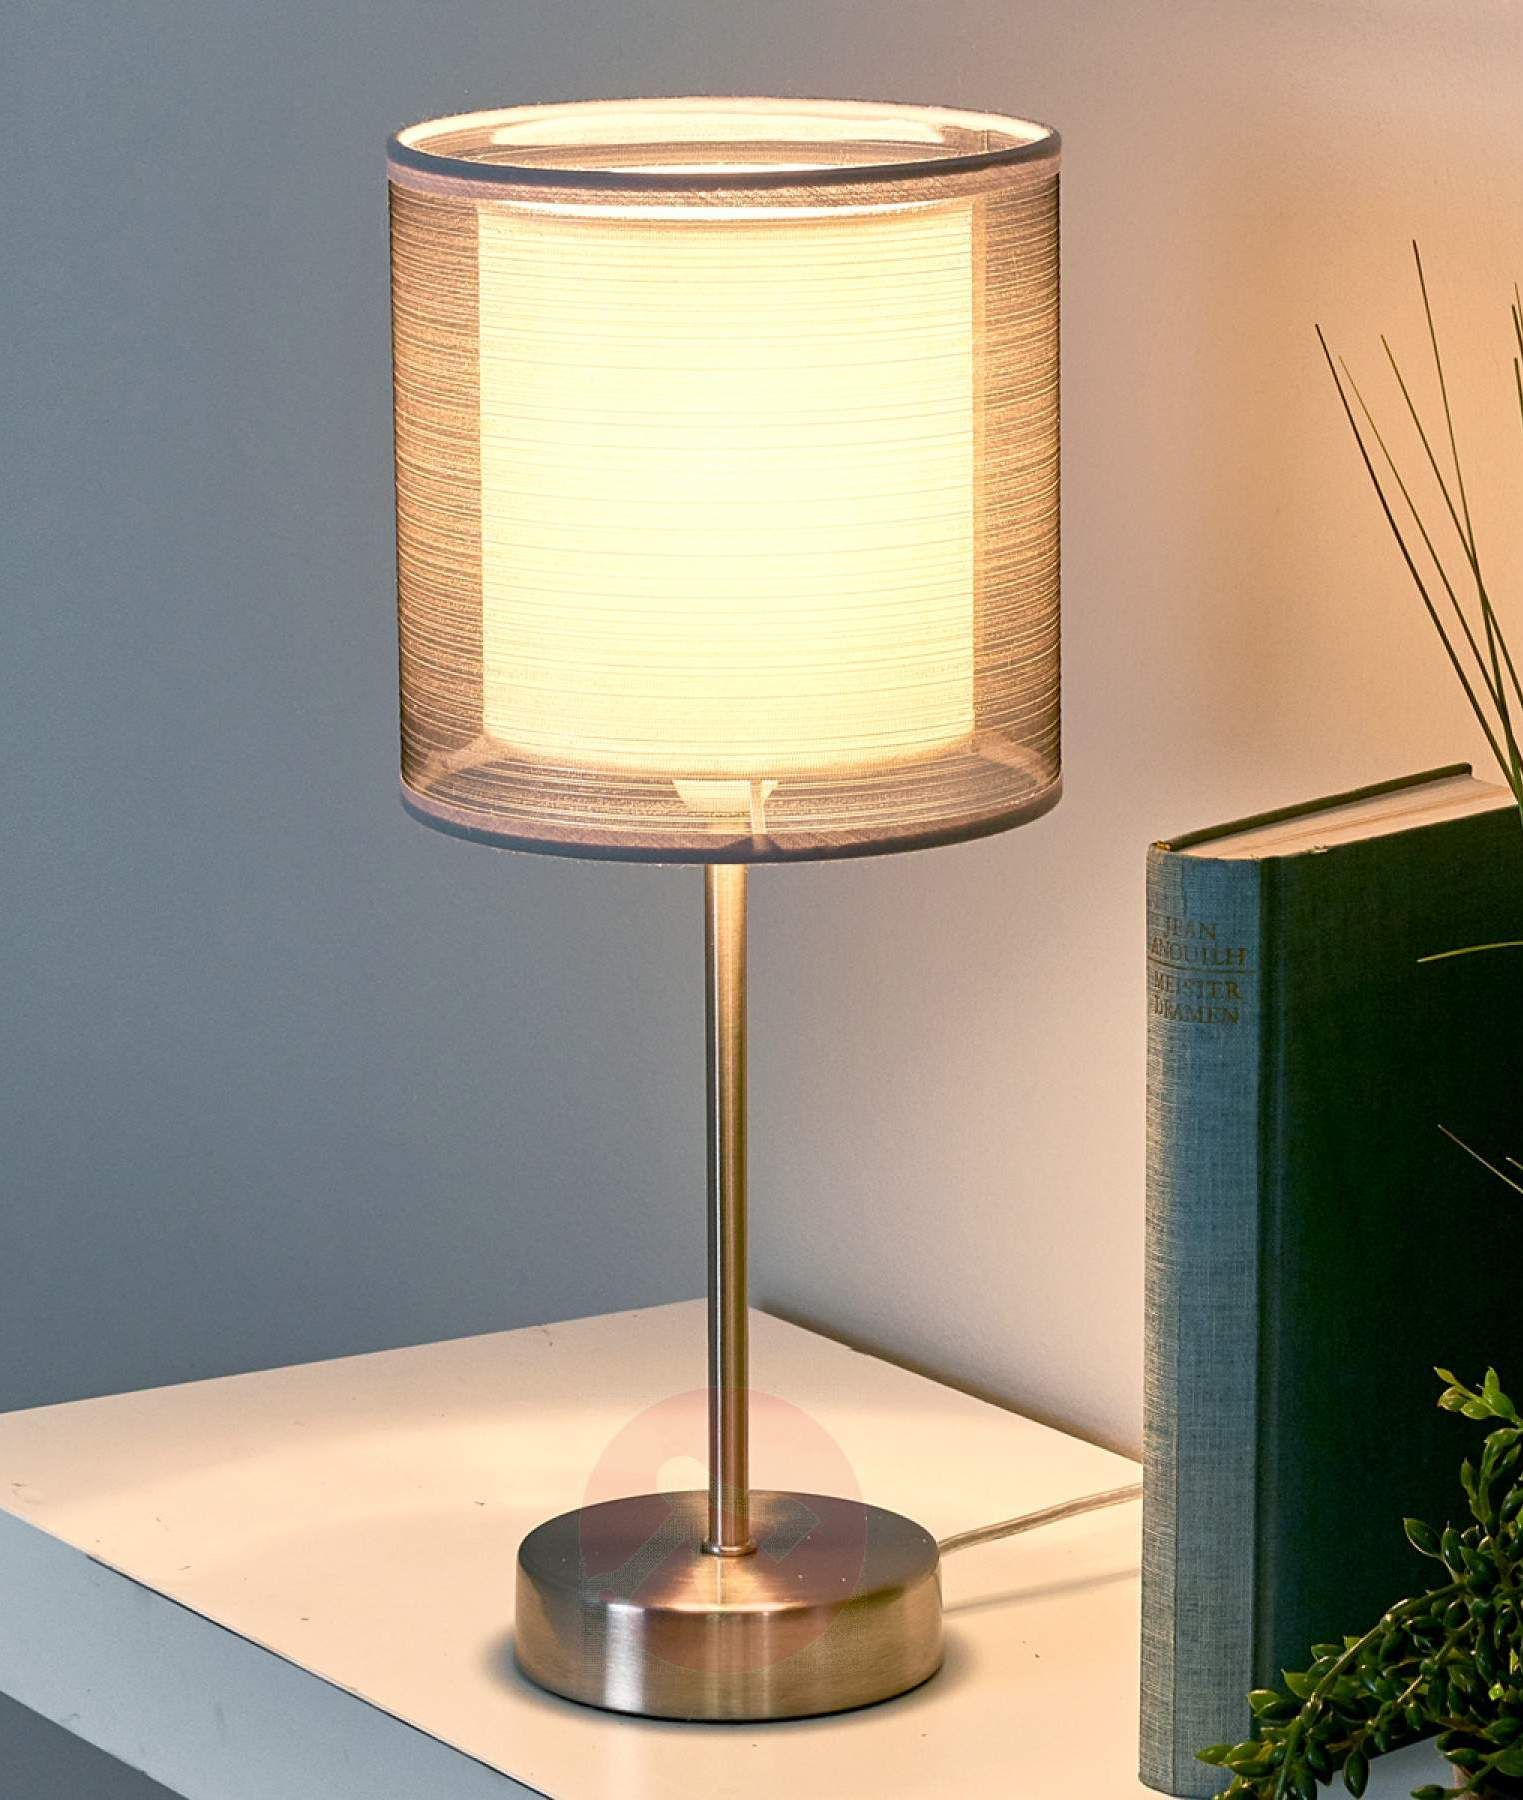 5 Best Table Lamps In 2020 Top Rated Stylish Desk Lamps Reviewed Lamp Side Table Lamps Table Lamp